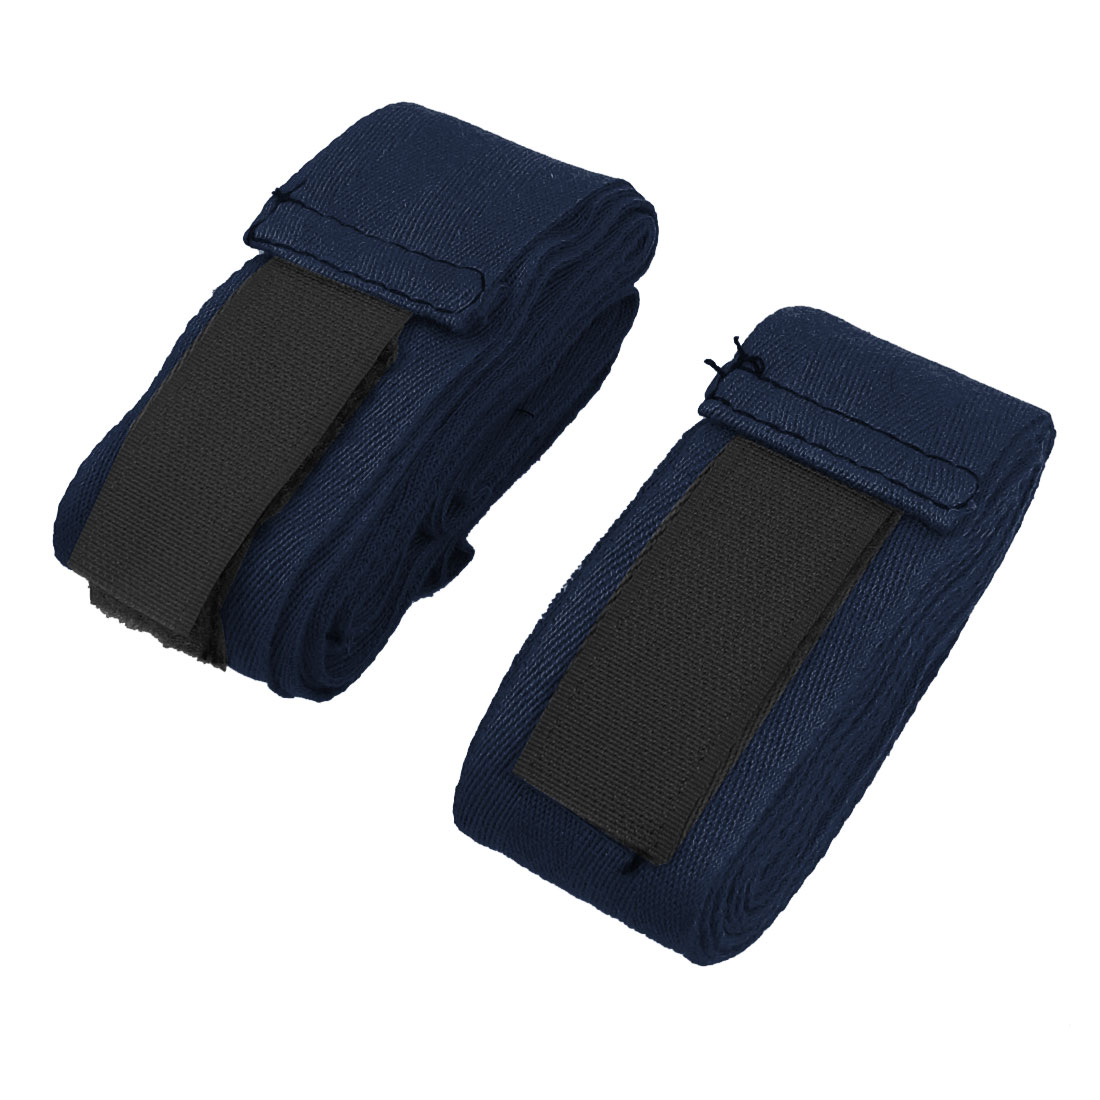 2.3M Long Textured Hand Wraps Strap Boxing Bandage Navy Blue 2 Pcs